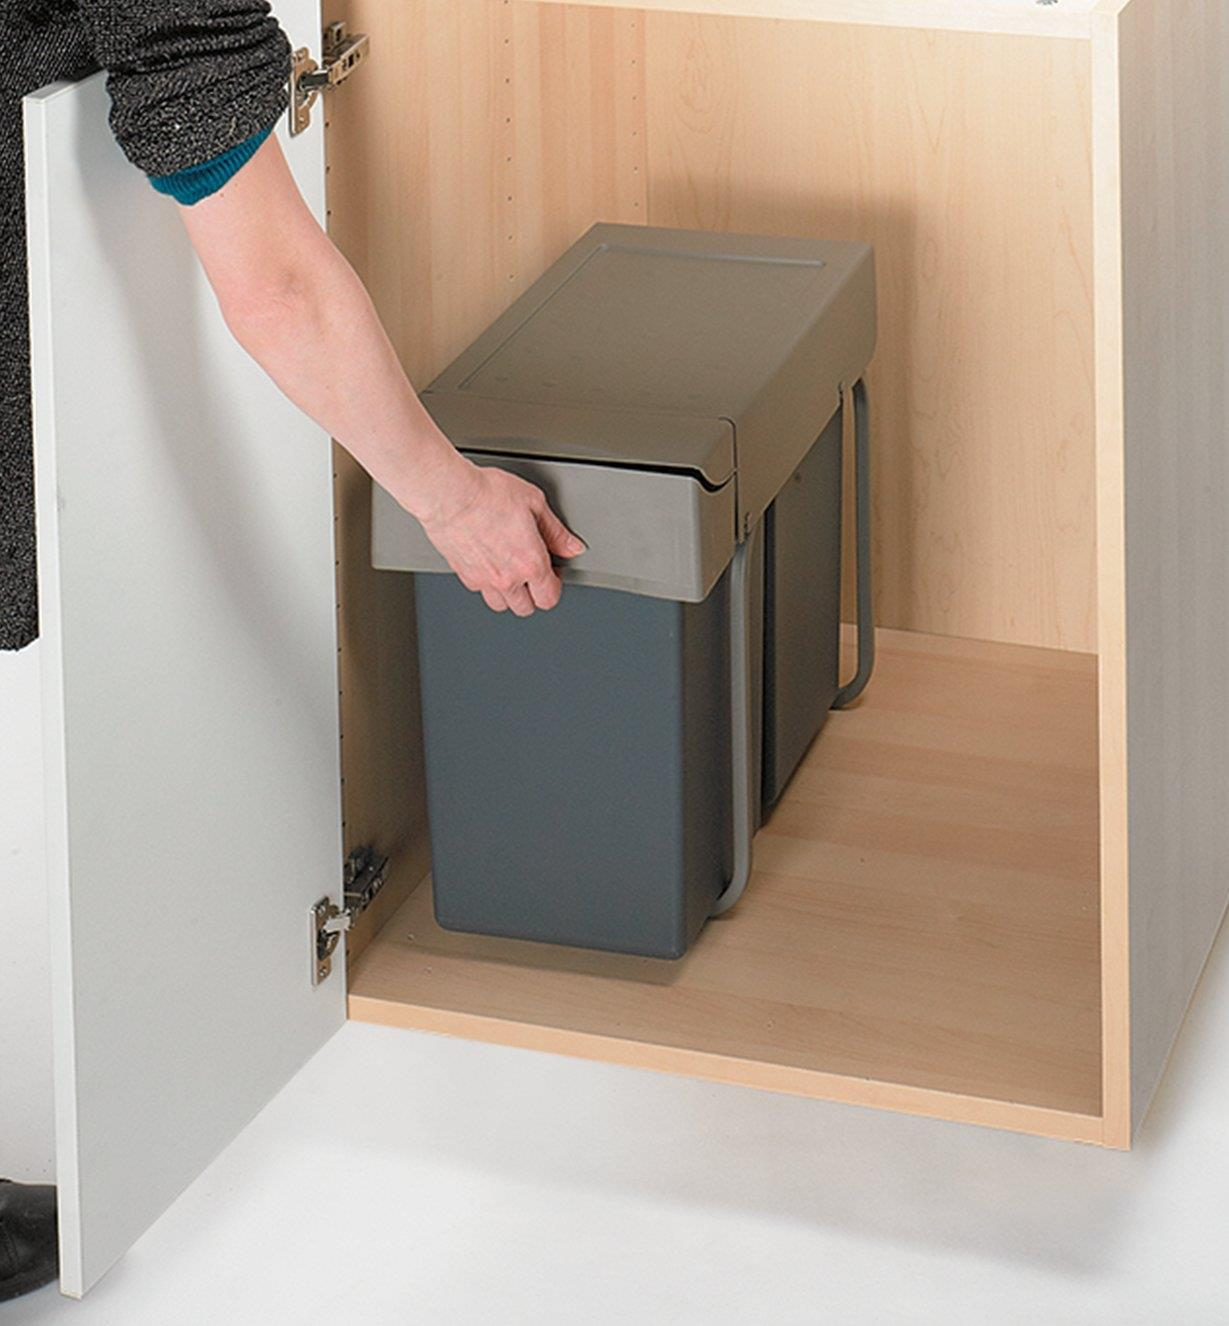 Gripping the Waste Container to slide it out of the cabinet